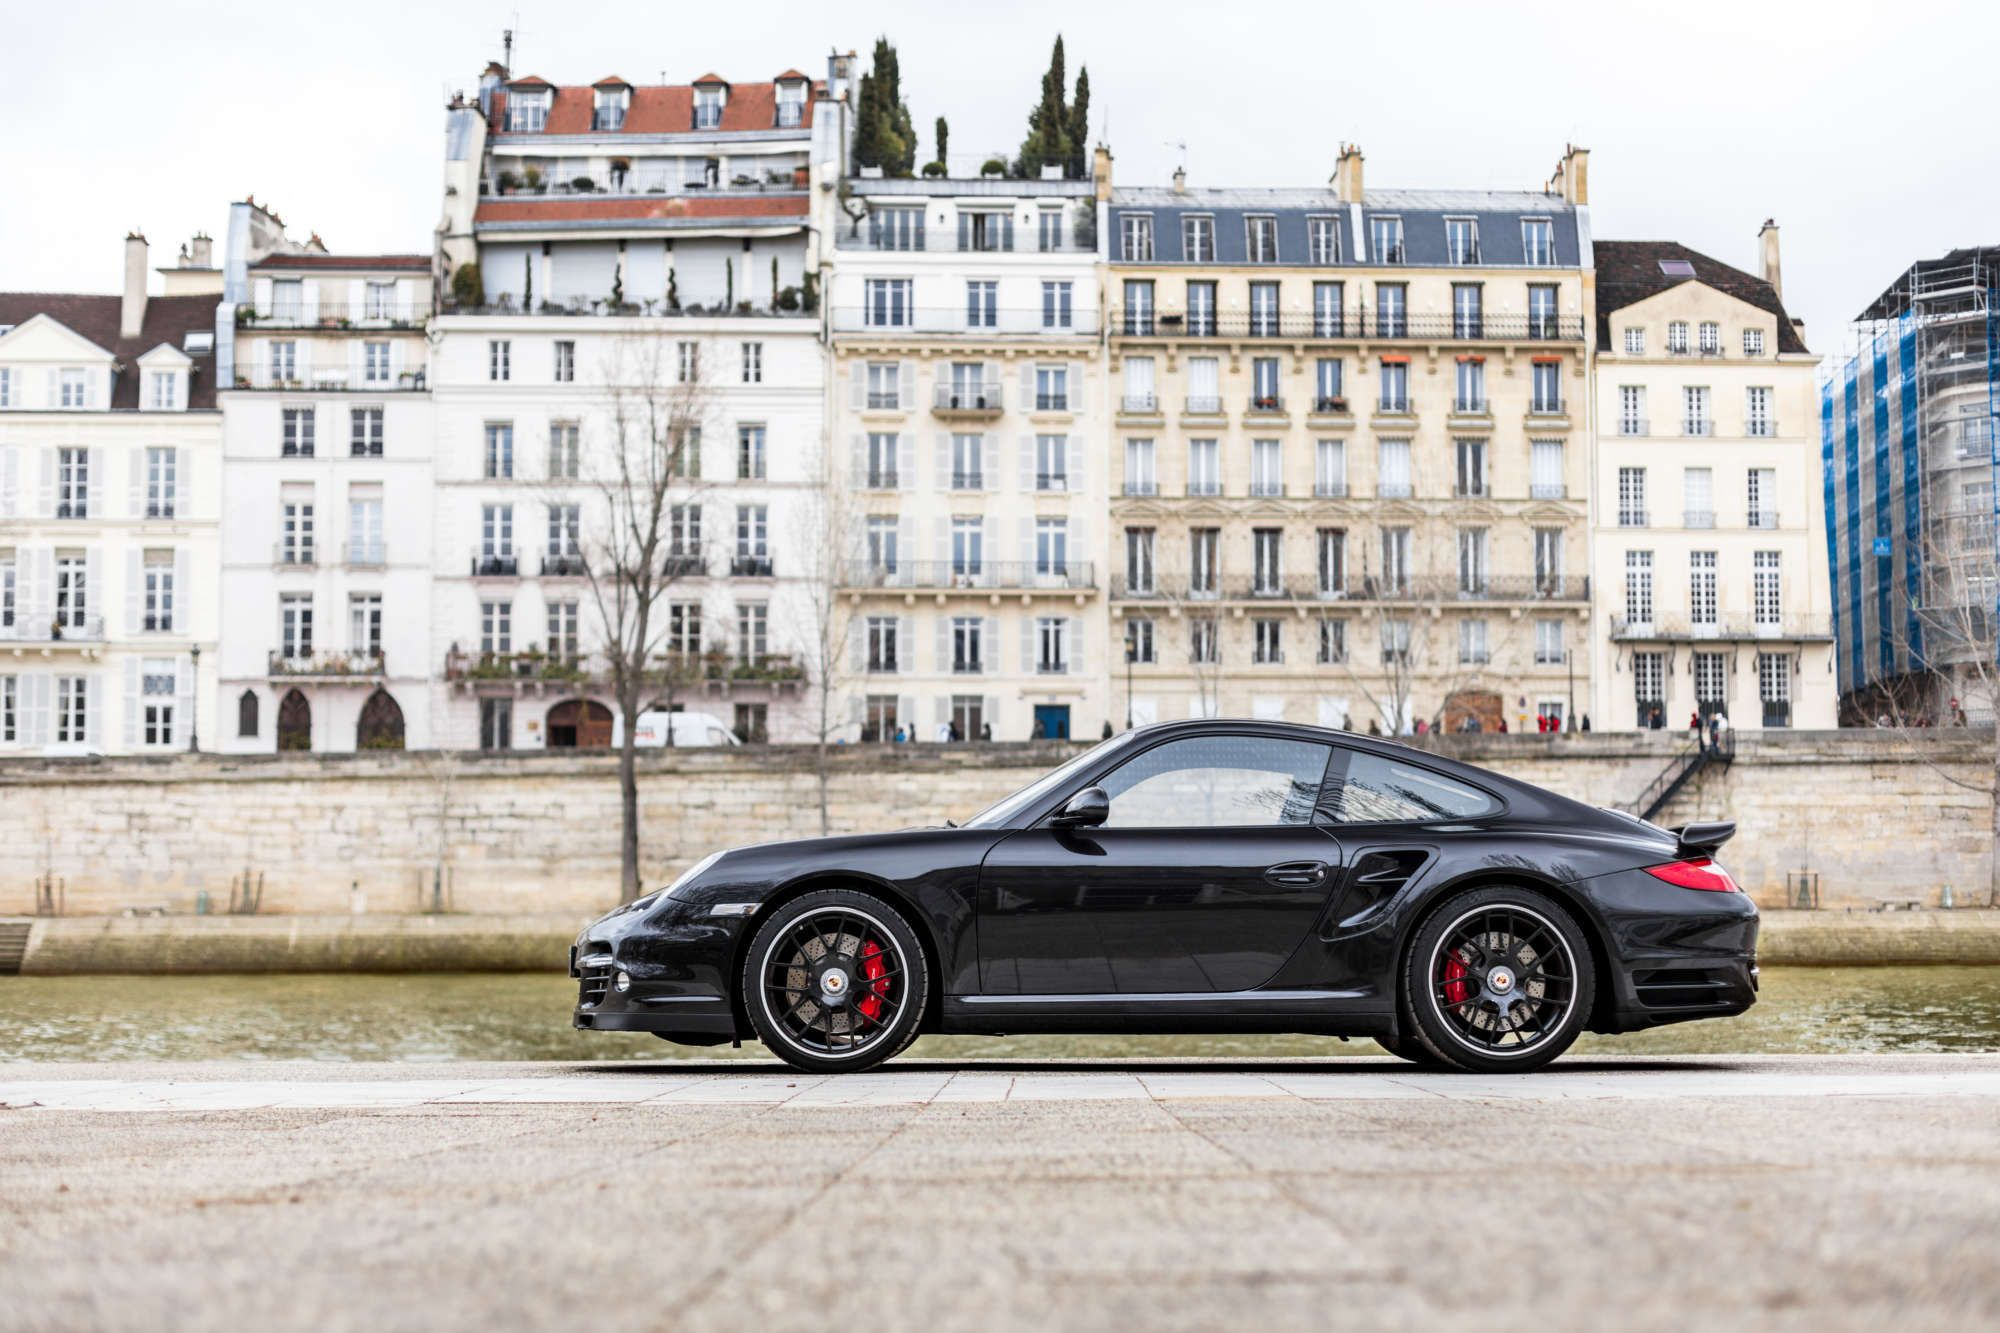 b493bb1aecd Buyer s guide - The Porsche 997 Turbo (S) - elferspot.com - Magazine ...